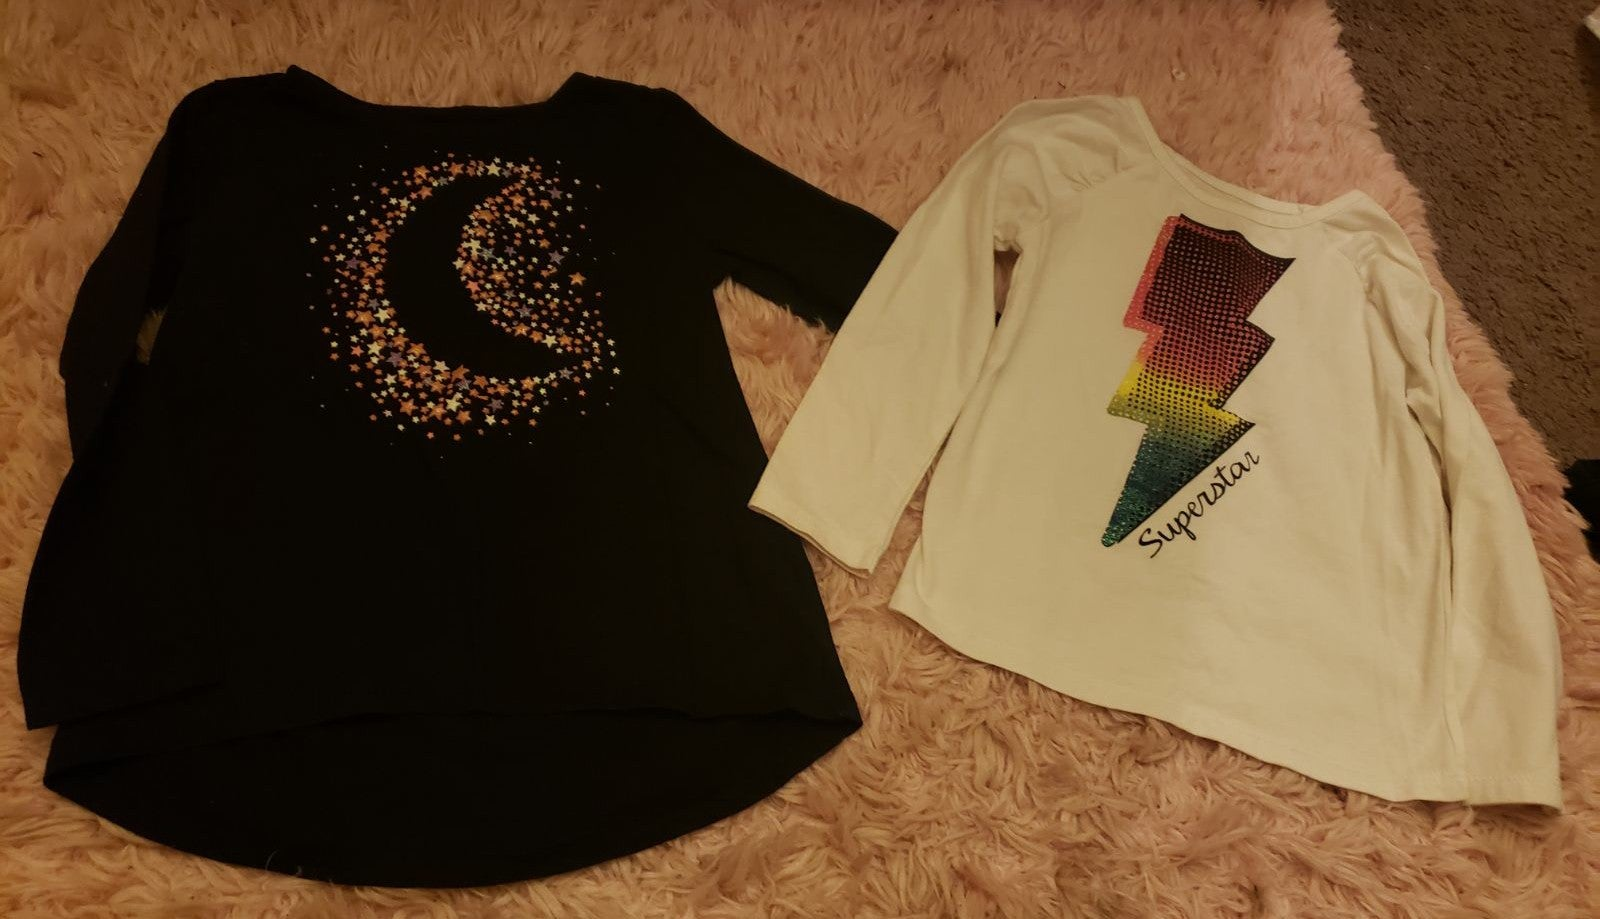 4t epic threads long sleeve shirts